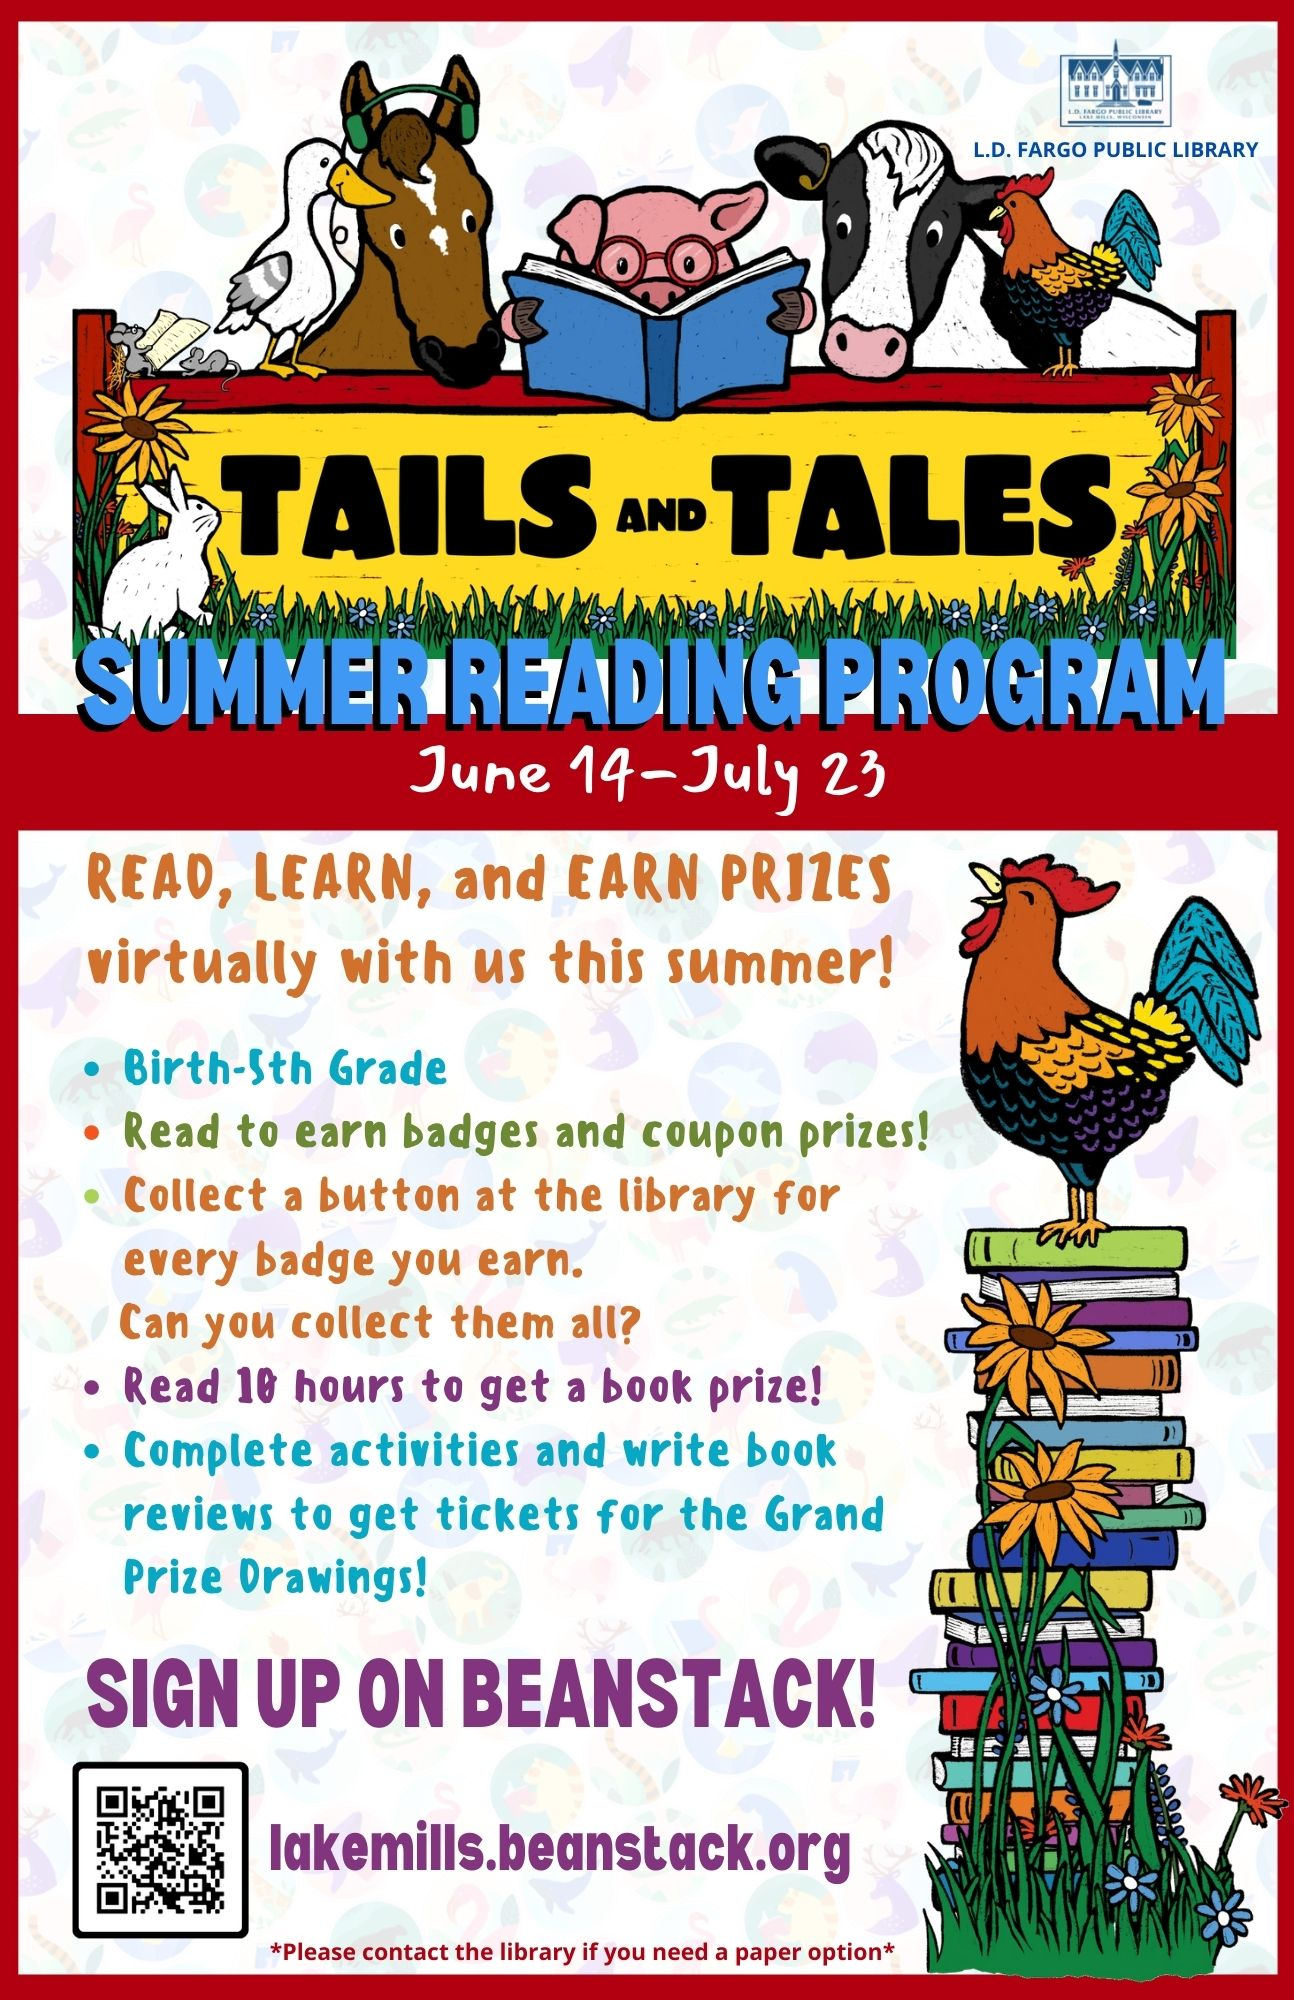 READ, LEARN, and EARN PRIZES virtually with us this summer! Birth-5th Grade Read to earn badges and coupon prizes! Collect a button at the library for every badge you earn.      Can you collect them all? Read 10 hours to get a book prize! Complete activities and write book reviews to get tickets for the Grand Prize Drawings! lakemills.beanstack.org